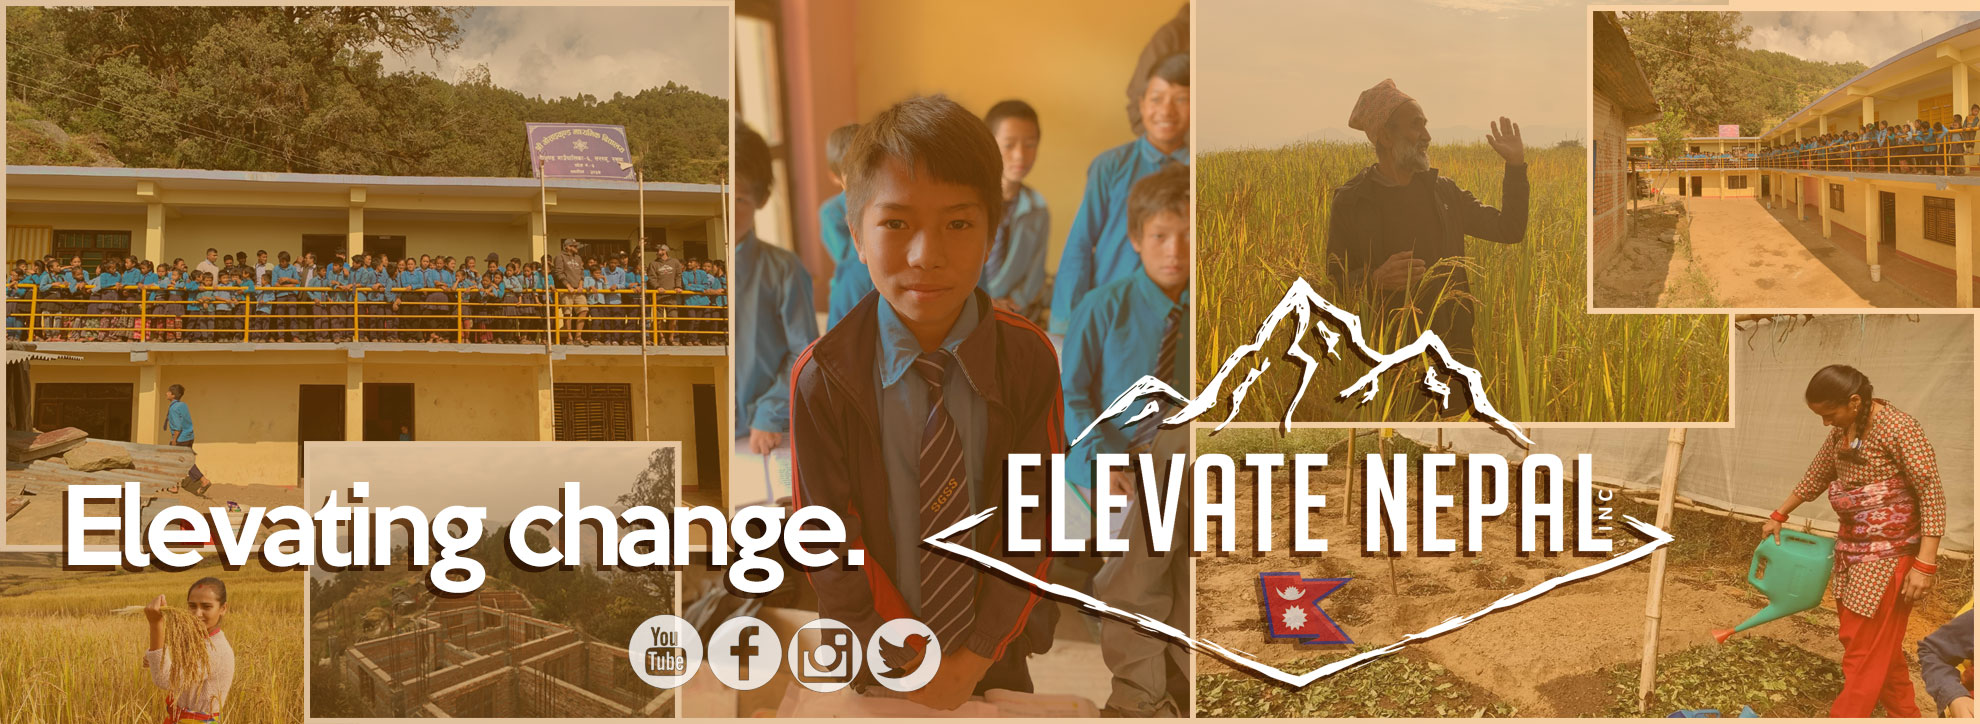 Elevate Nepal Relief Efforts